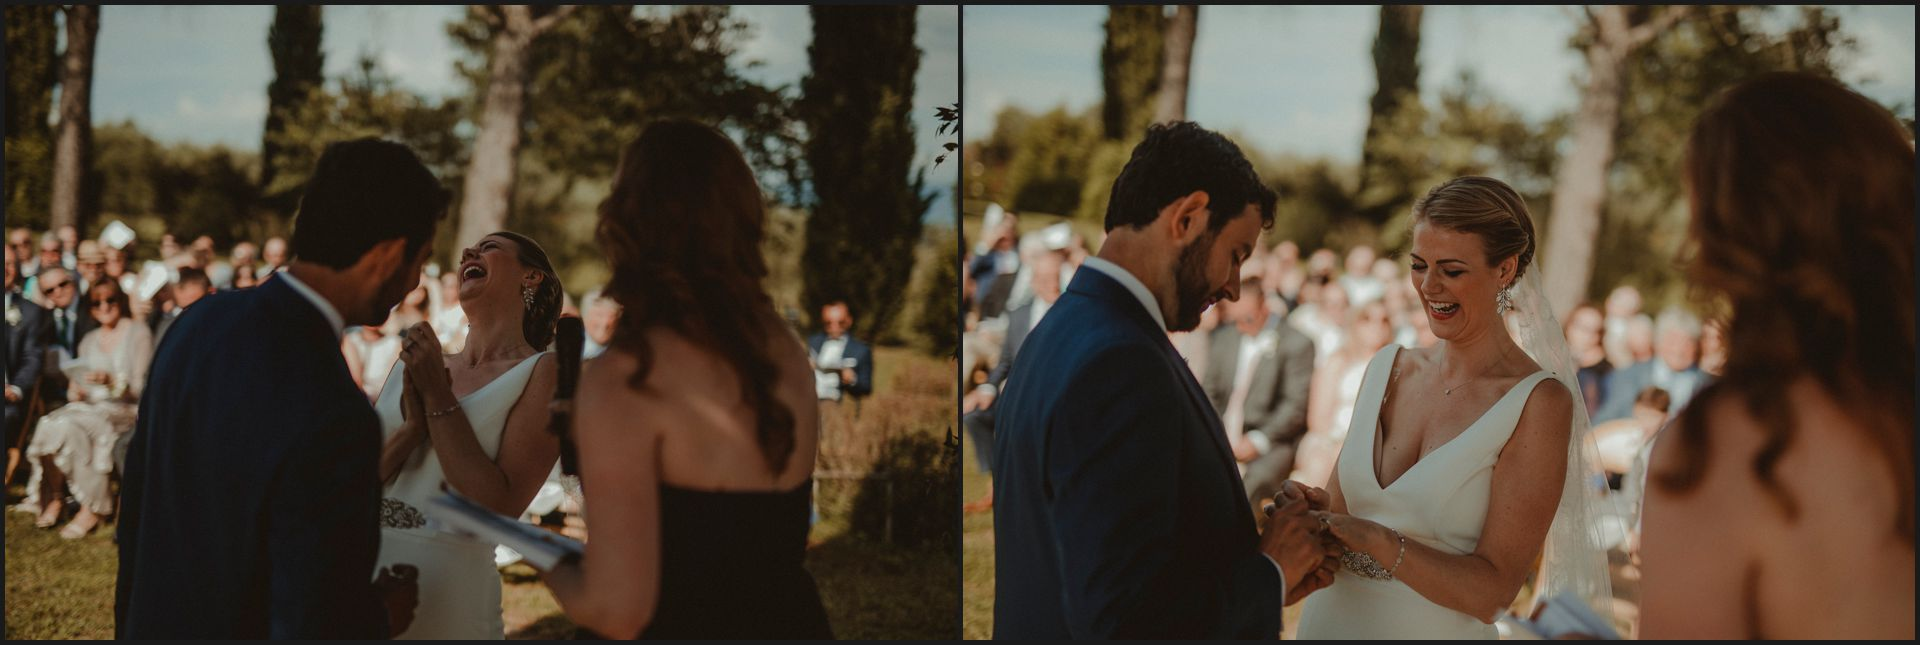 tenuta di canonica, umbria, wedding, ceremony, country, bride, groom, rings, love